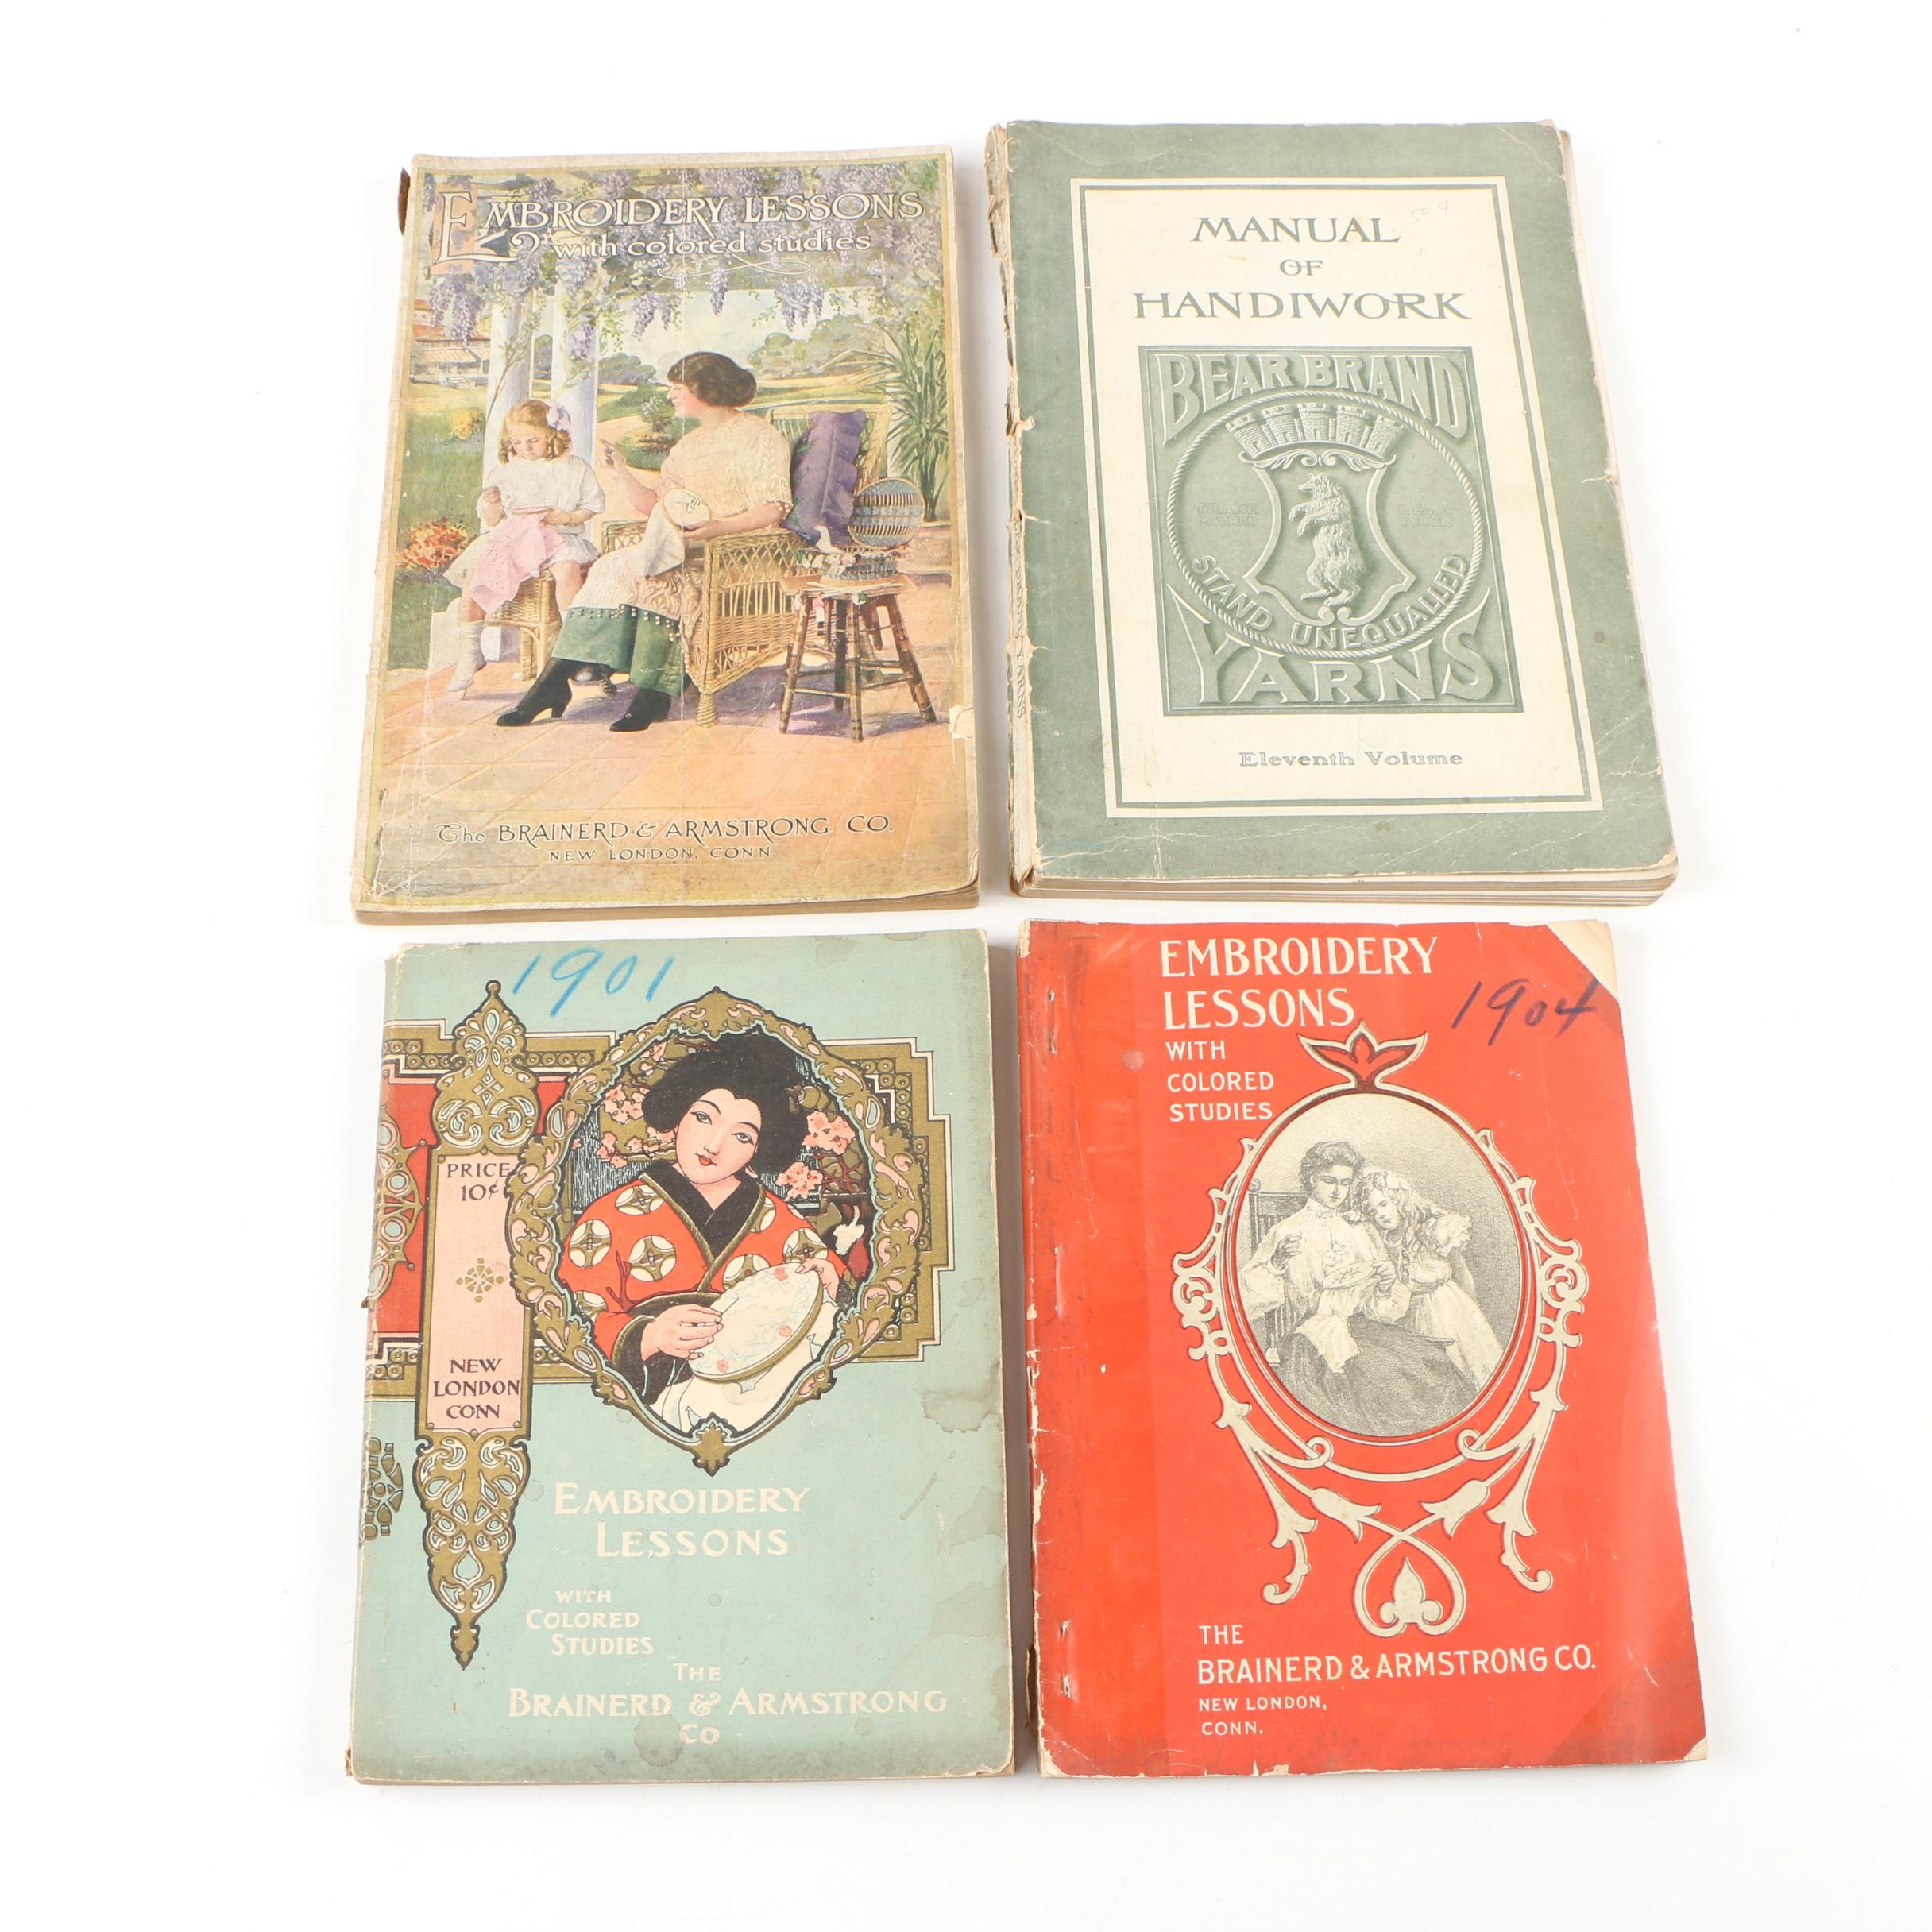 """Antiquarian Embroidery Books featuring """"Embroidery Lessons with Colored Studies"""""""